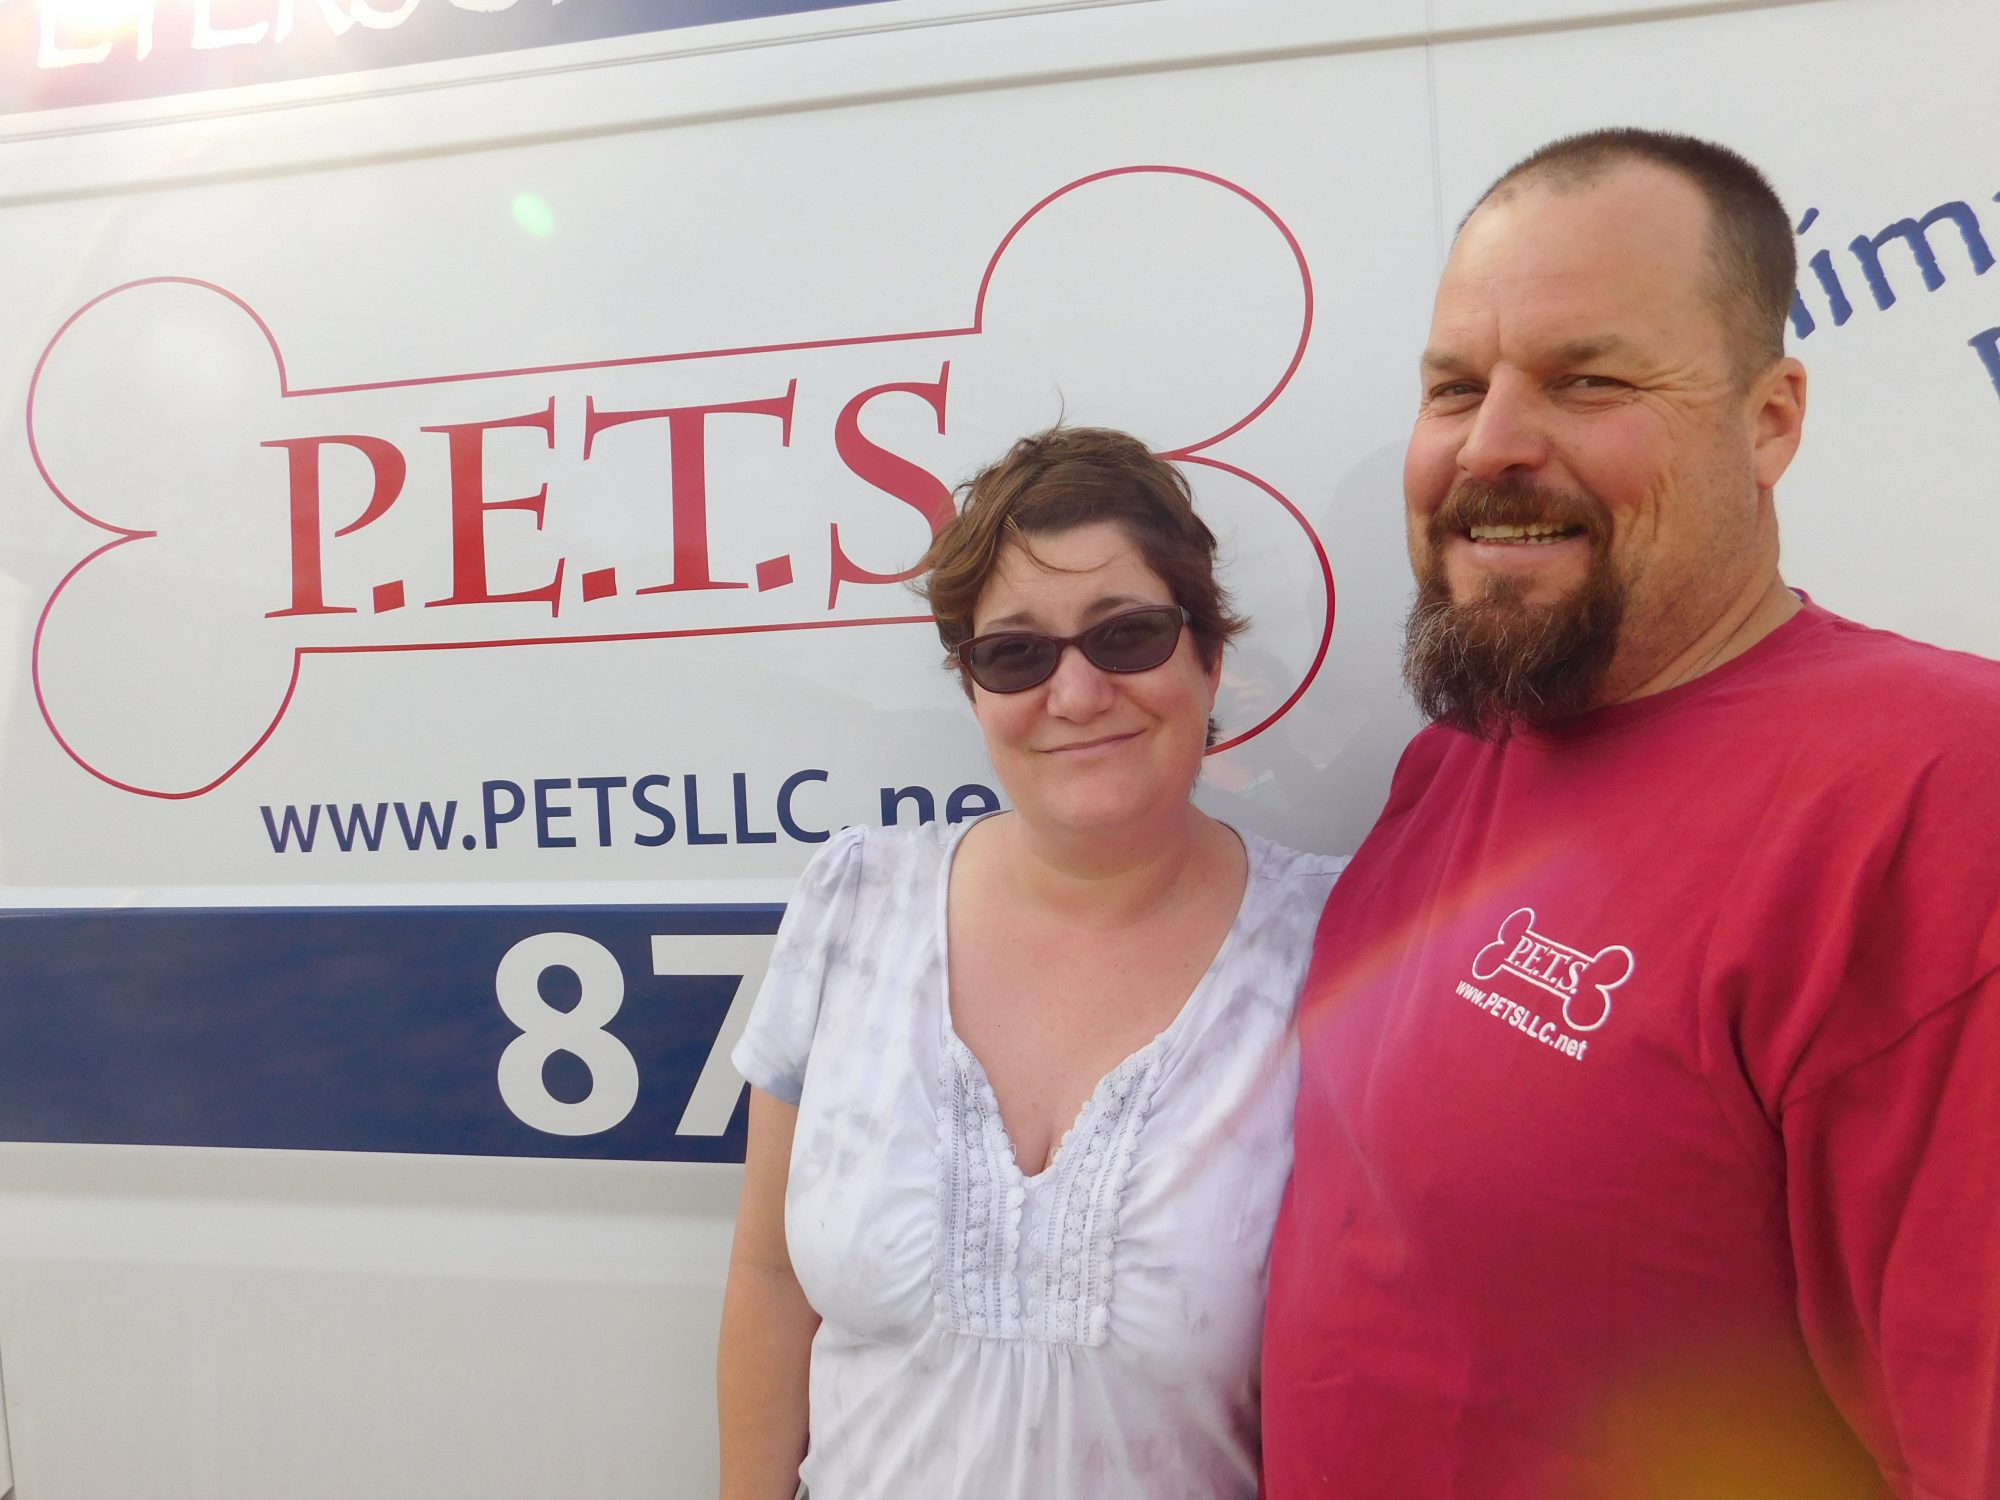 Pam and Kyle Peterson: P.E.T.S.